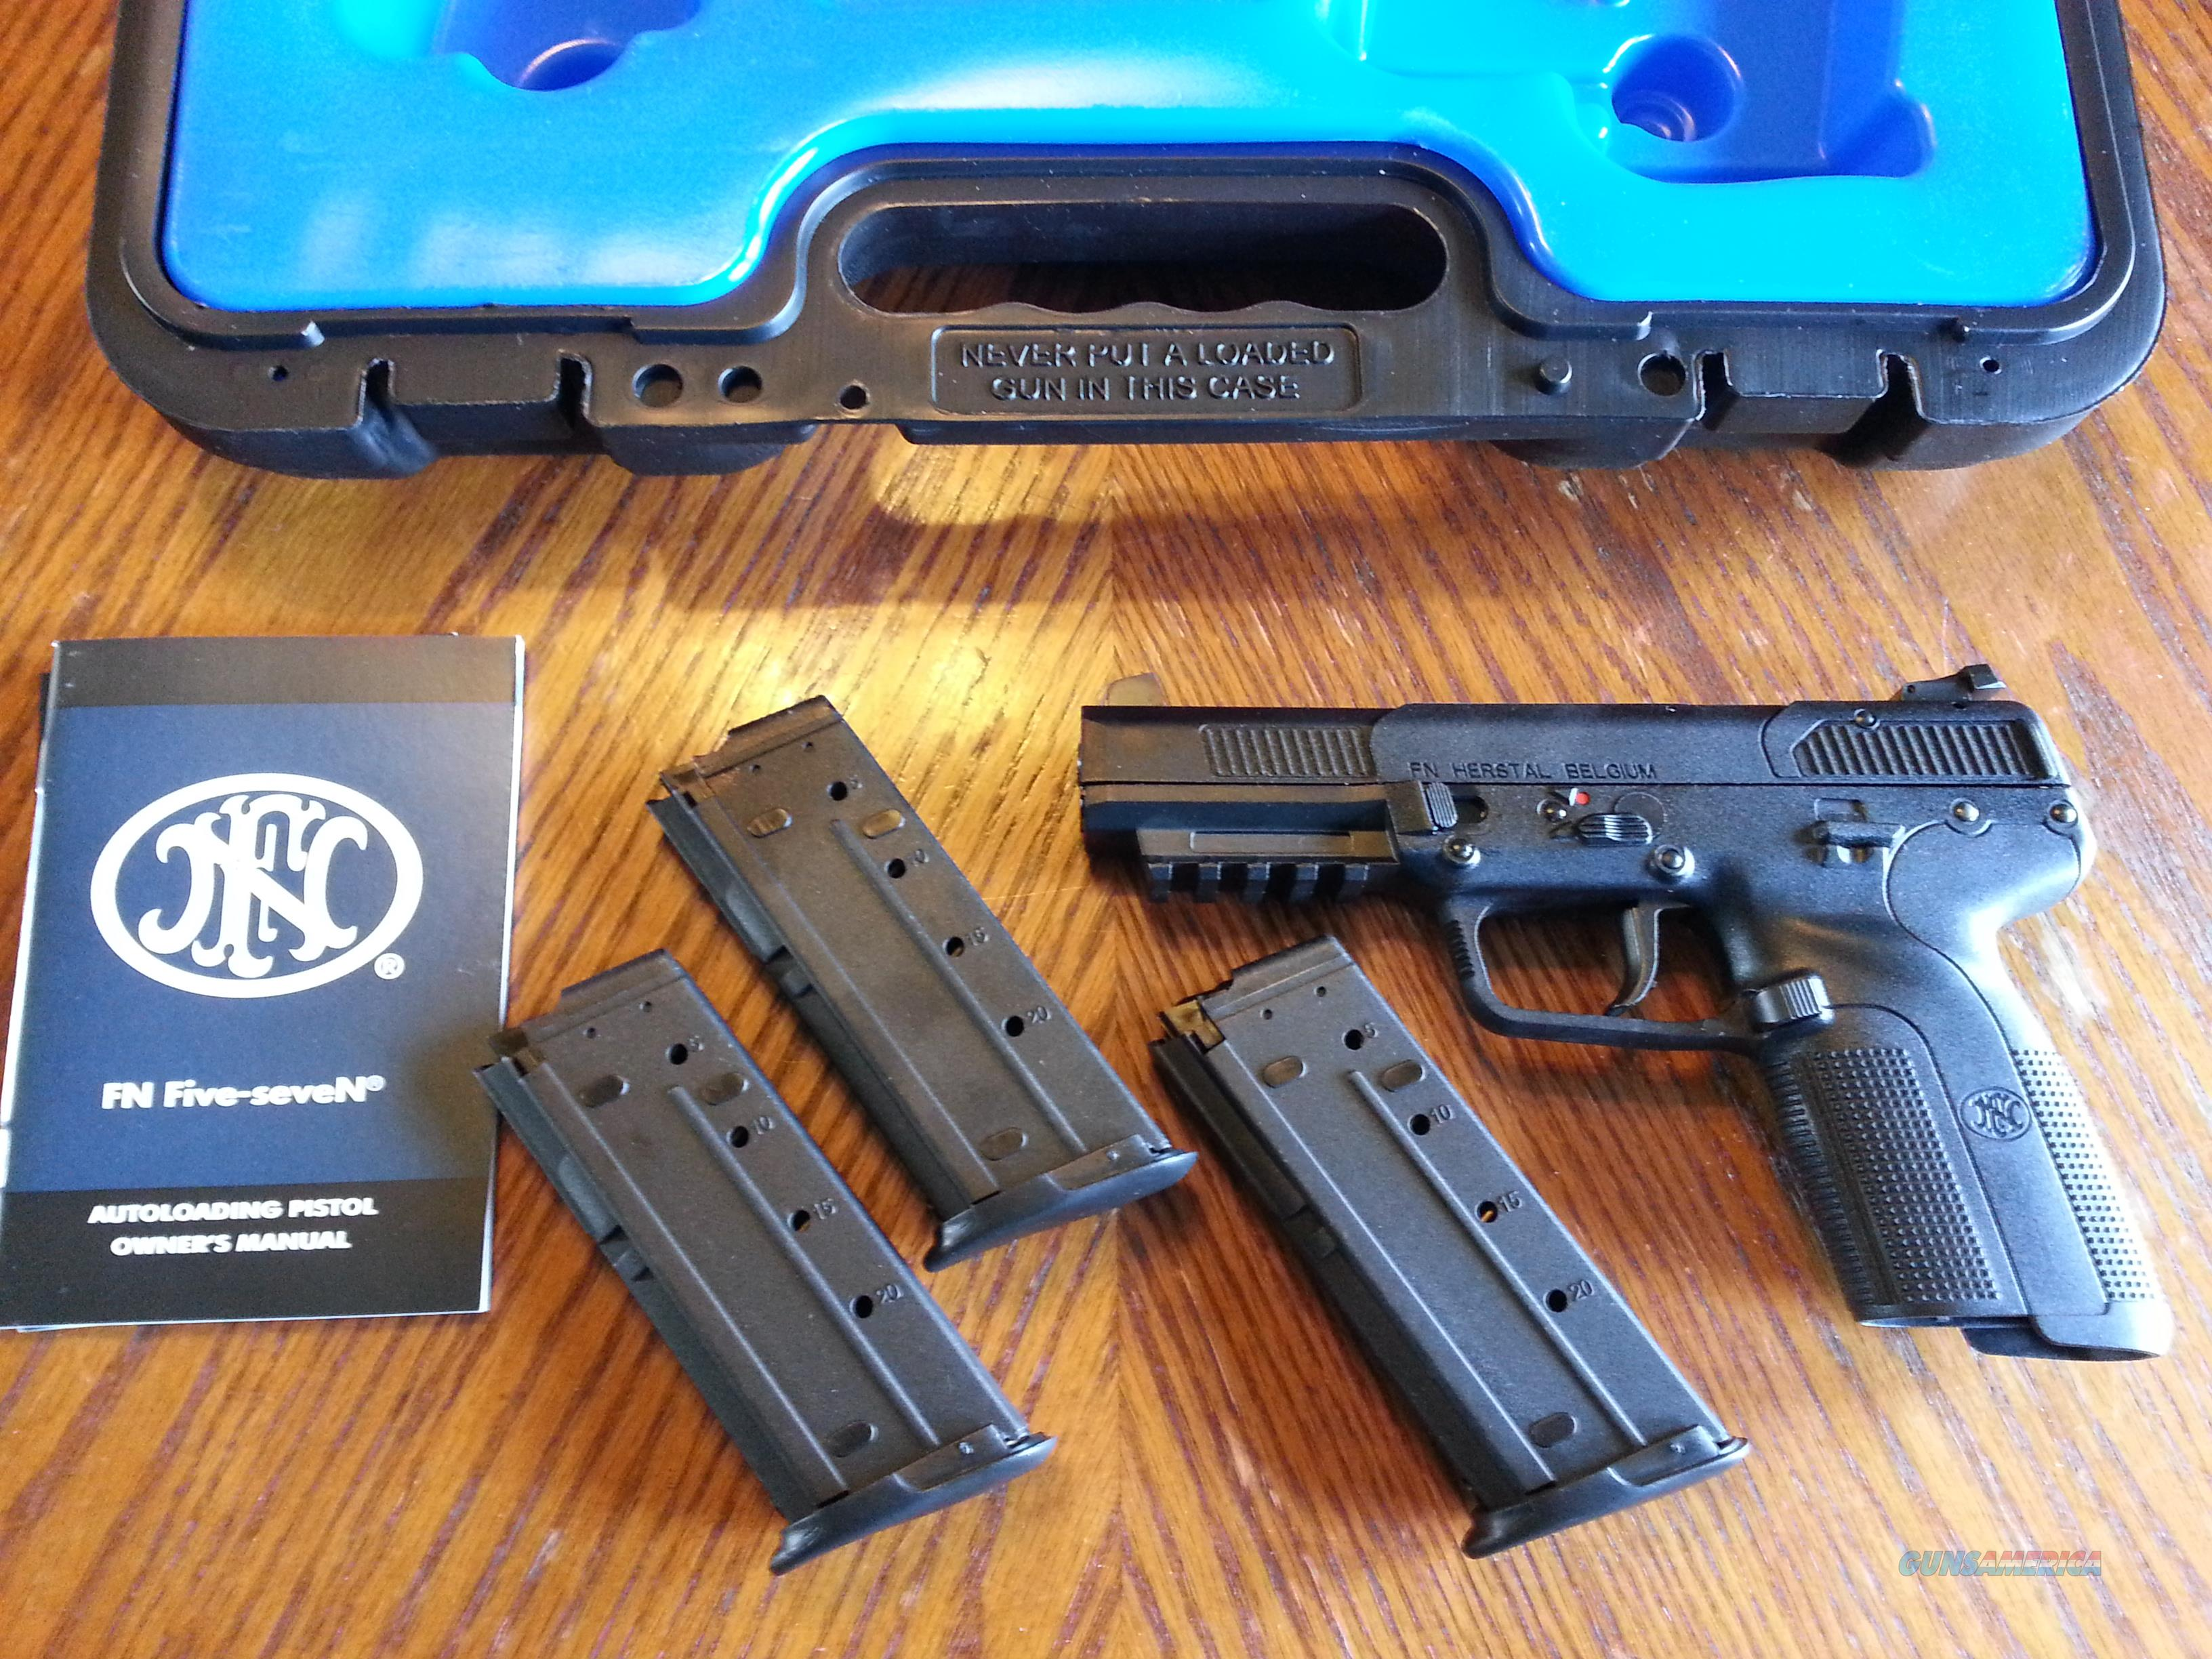 FN Five-Seven Pistol, MK II, 5.7 x 28mm, NIB, (3) 20 Round Mags  Guns > Pistols > FNH - Fabrique Nationale (FN) Pistols > FiveSeven